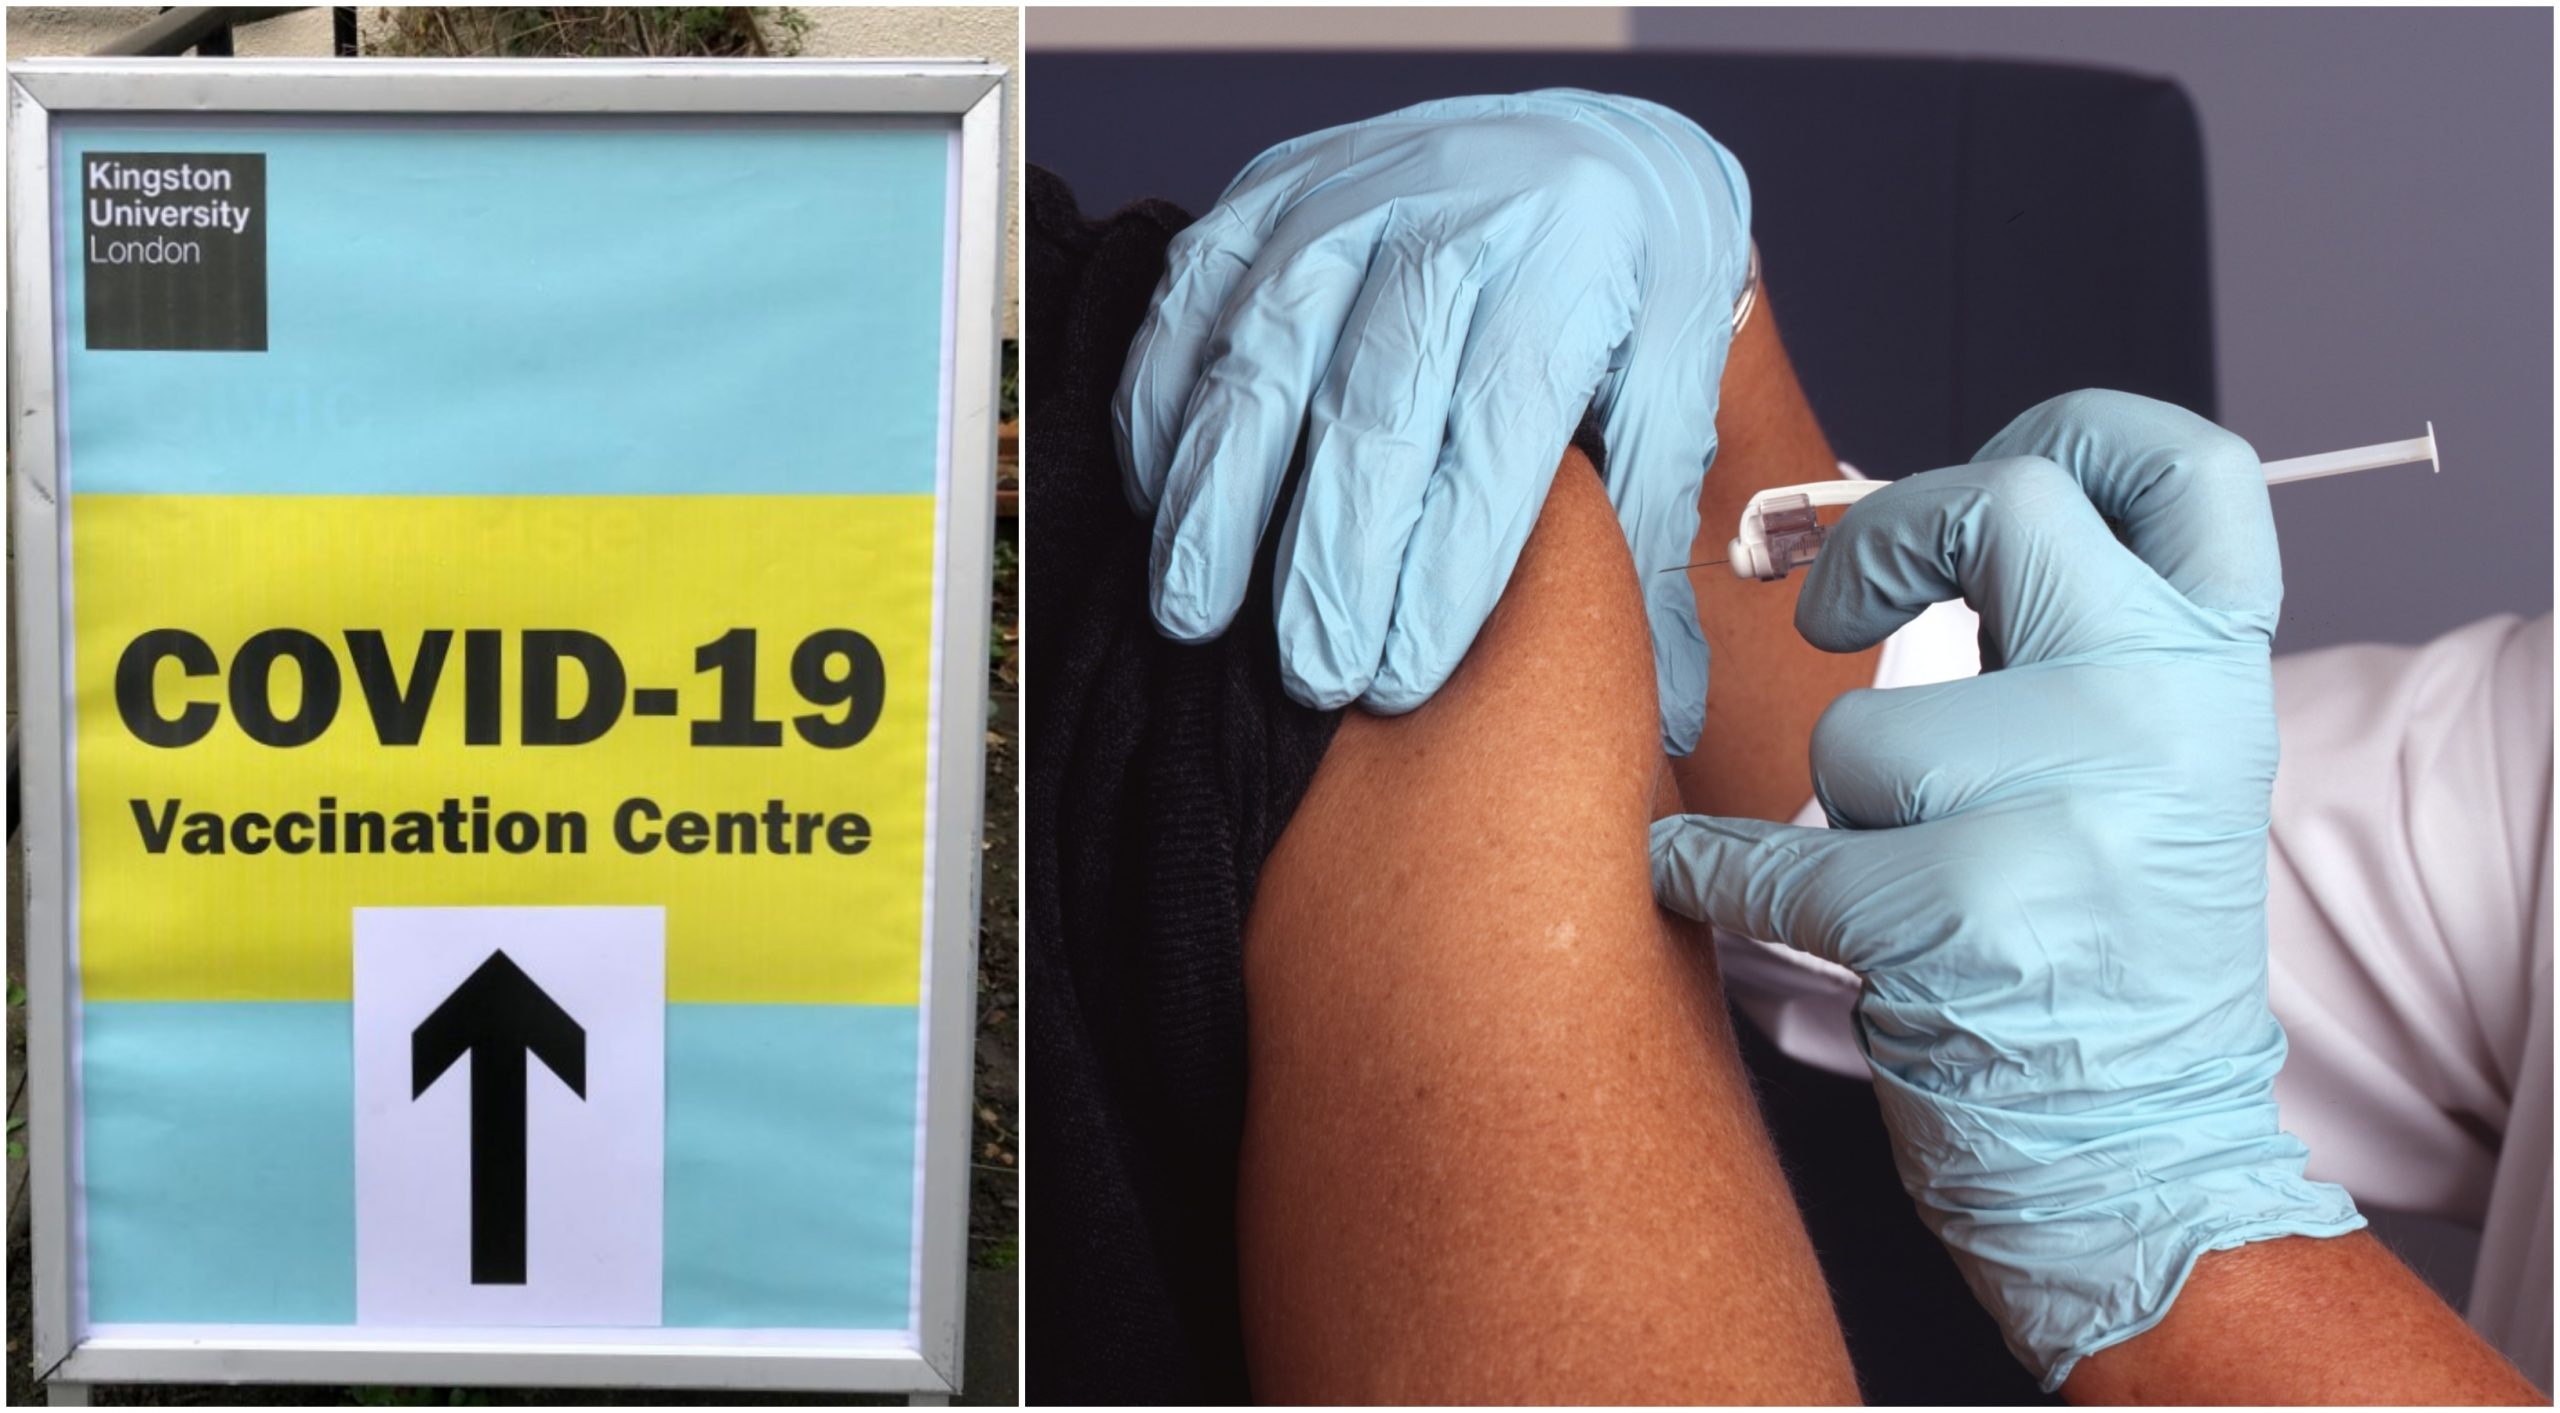 Student vaccinations at KU 'the ultimate hope'